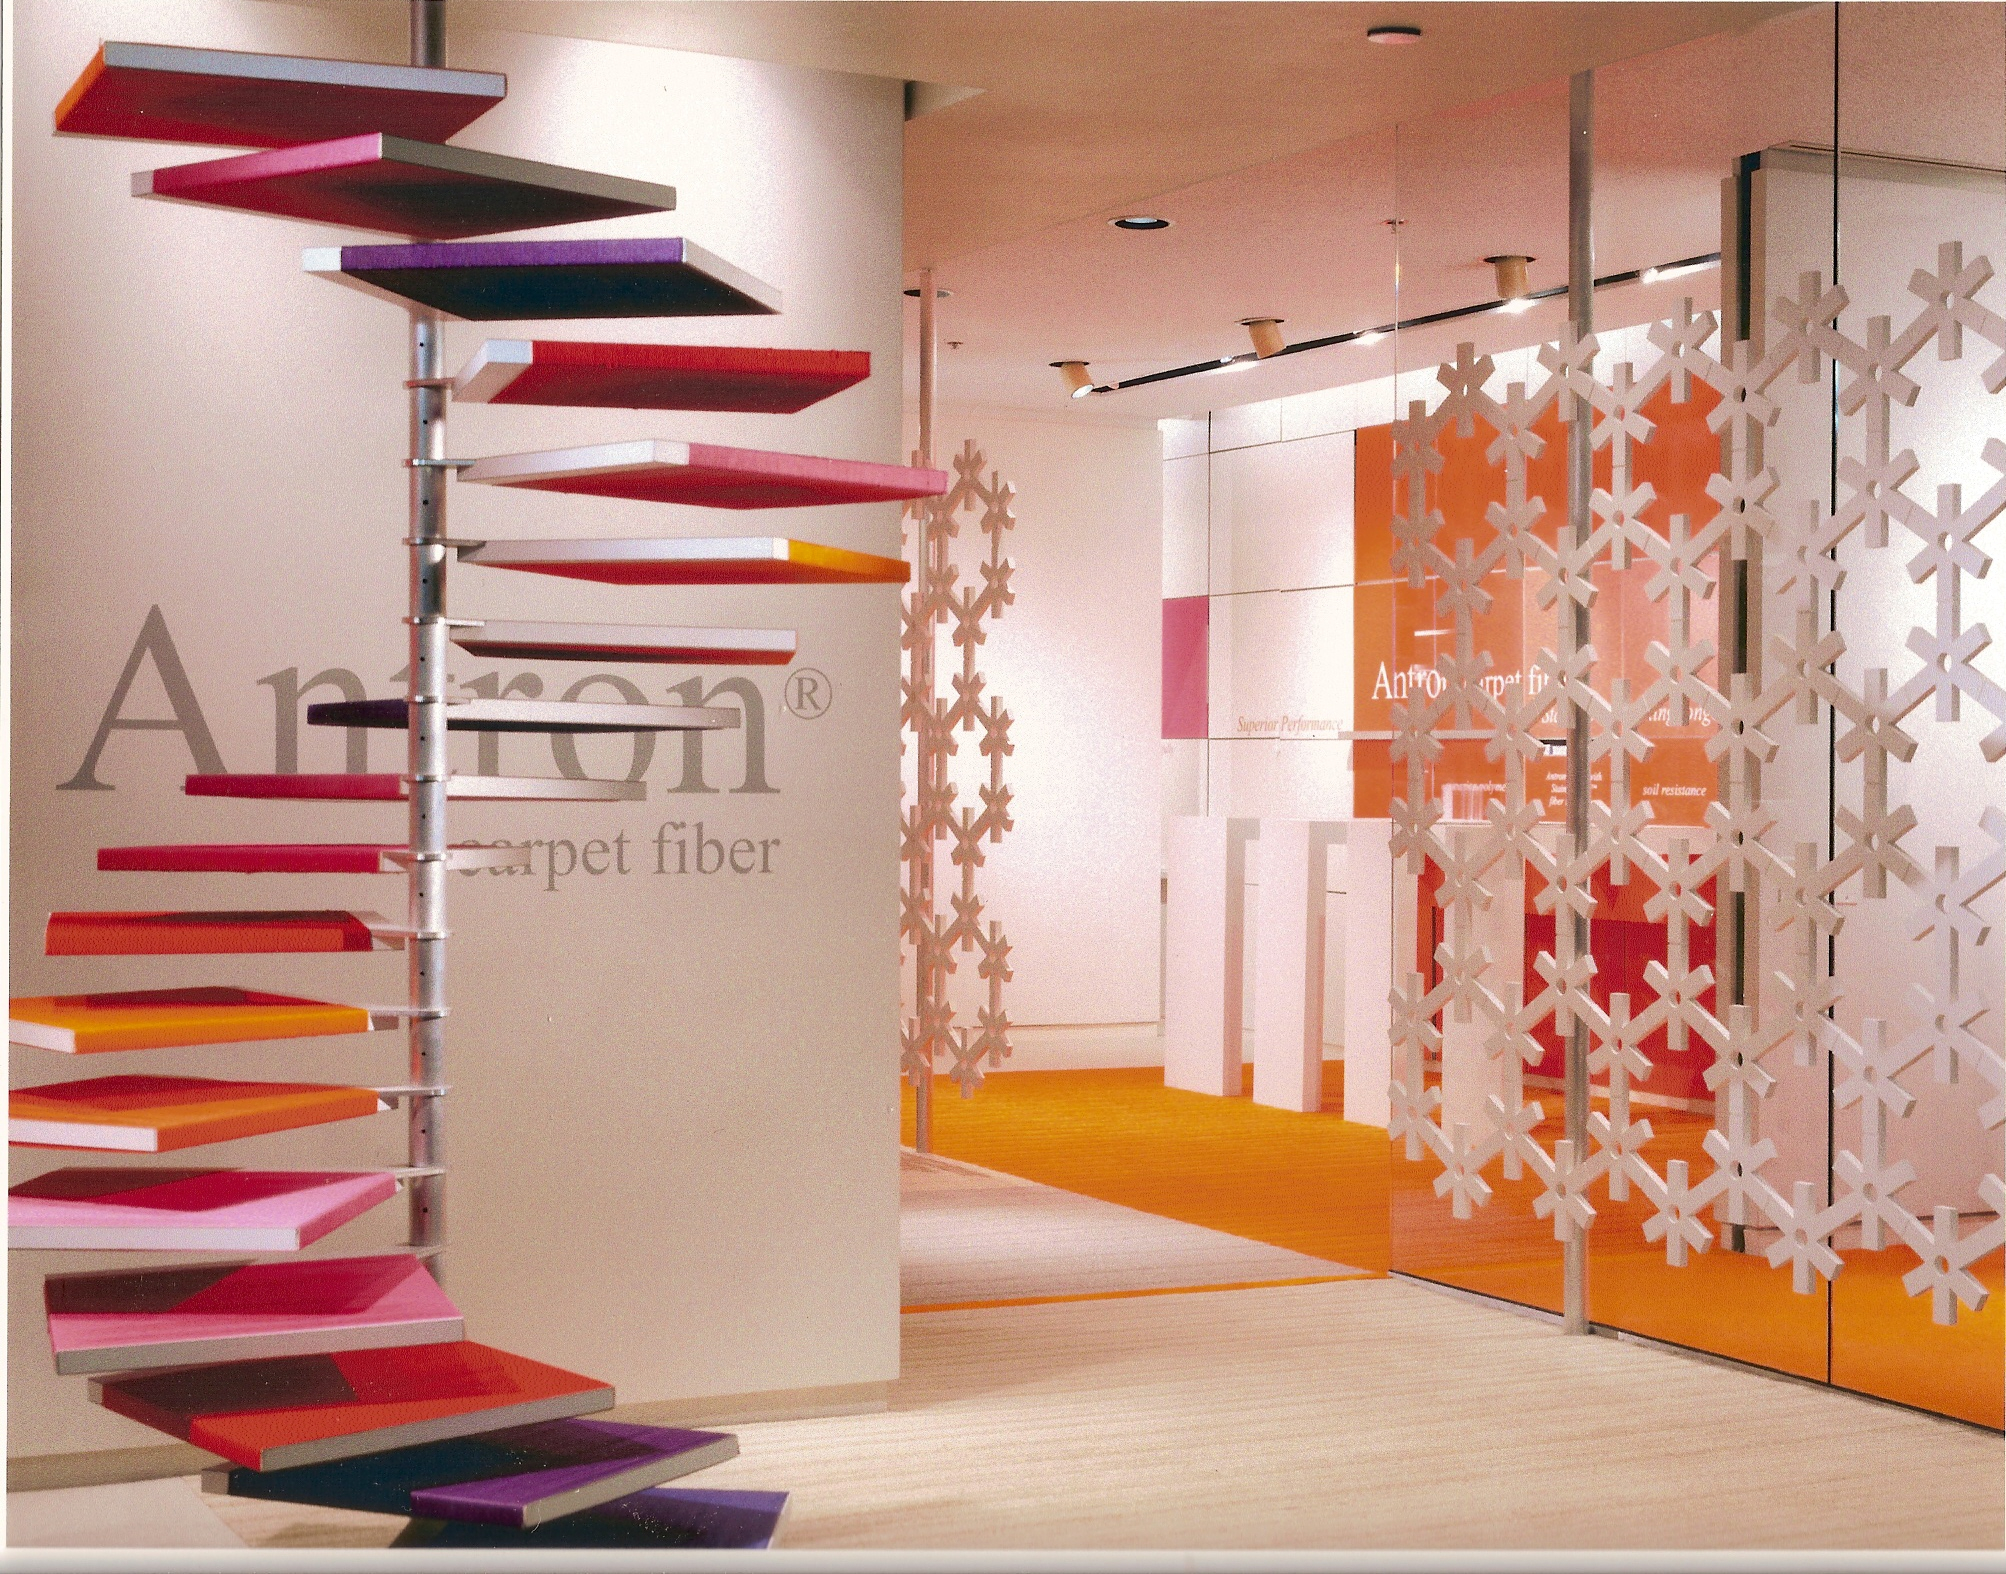 Custom helicoil display with fiber wrappings, CNC-cut retro wall panels, custom-printed graphics, and millwork by Ndio.